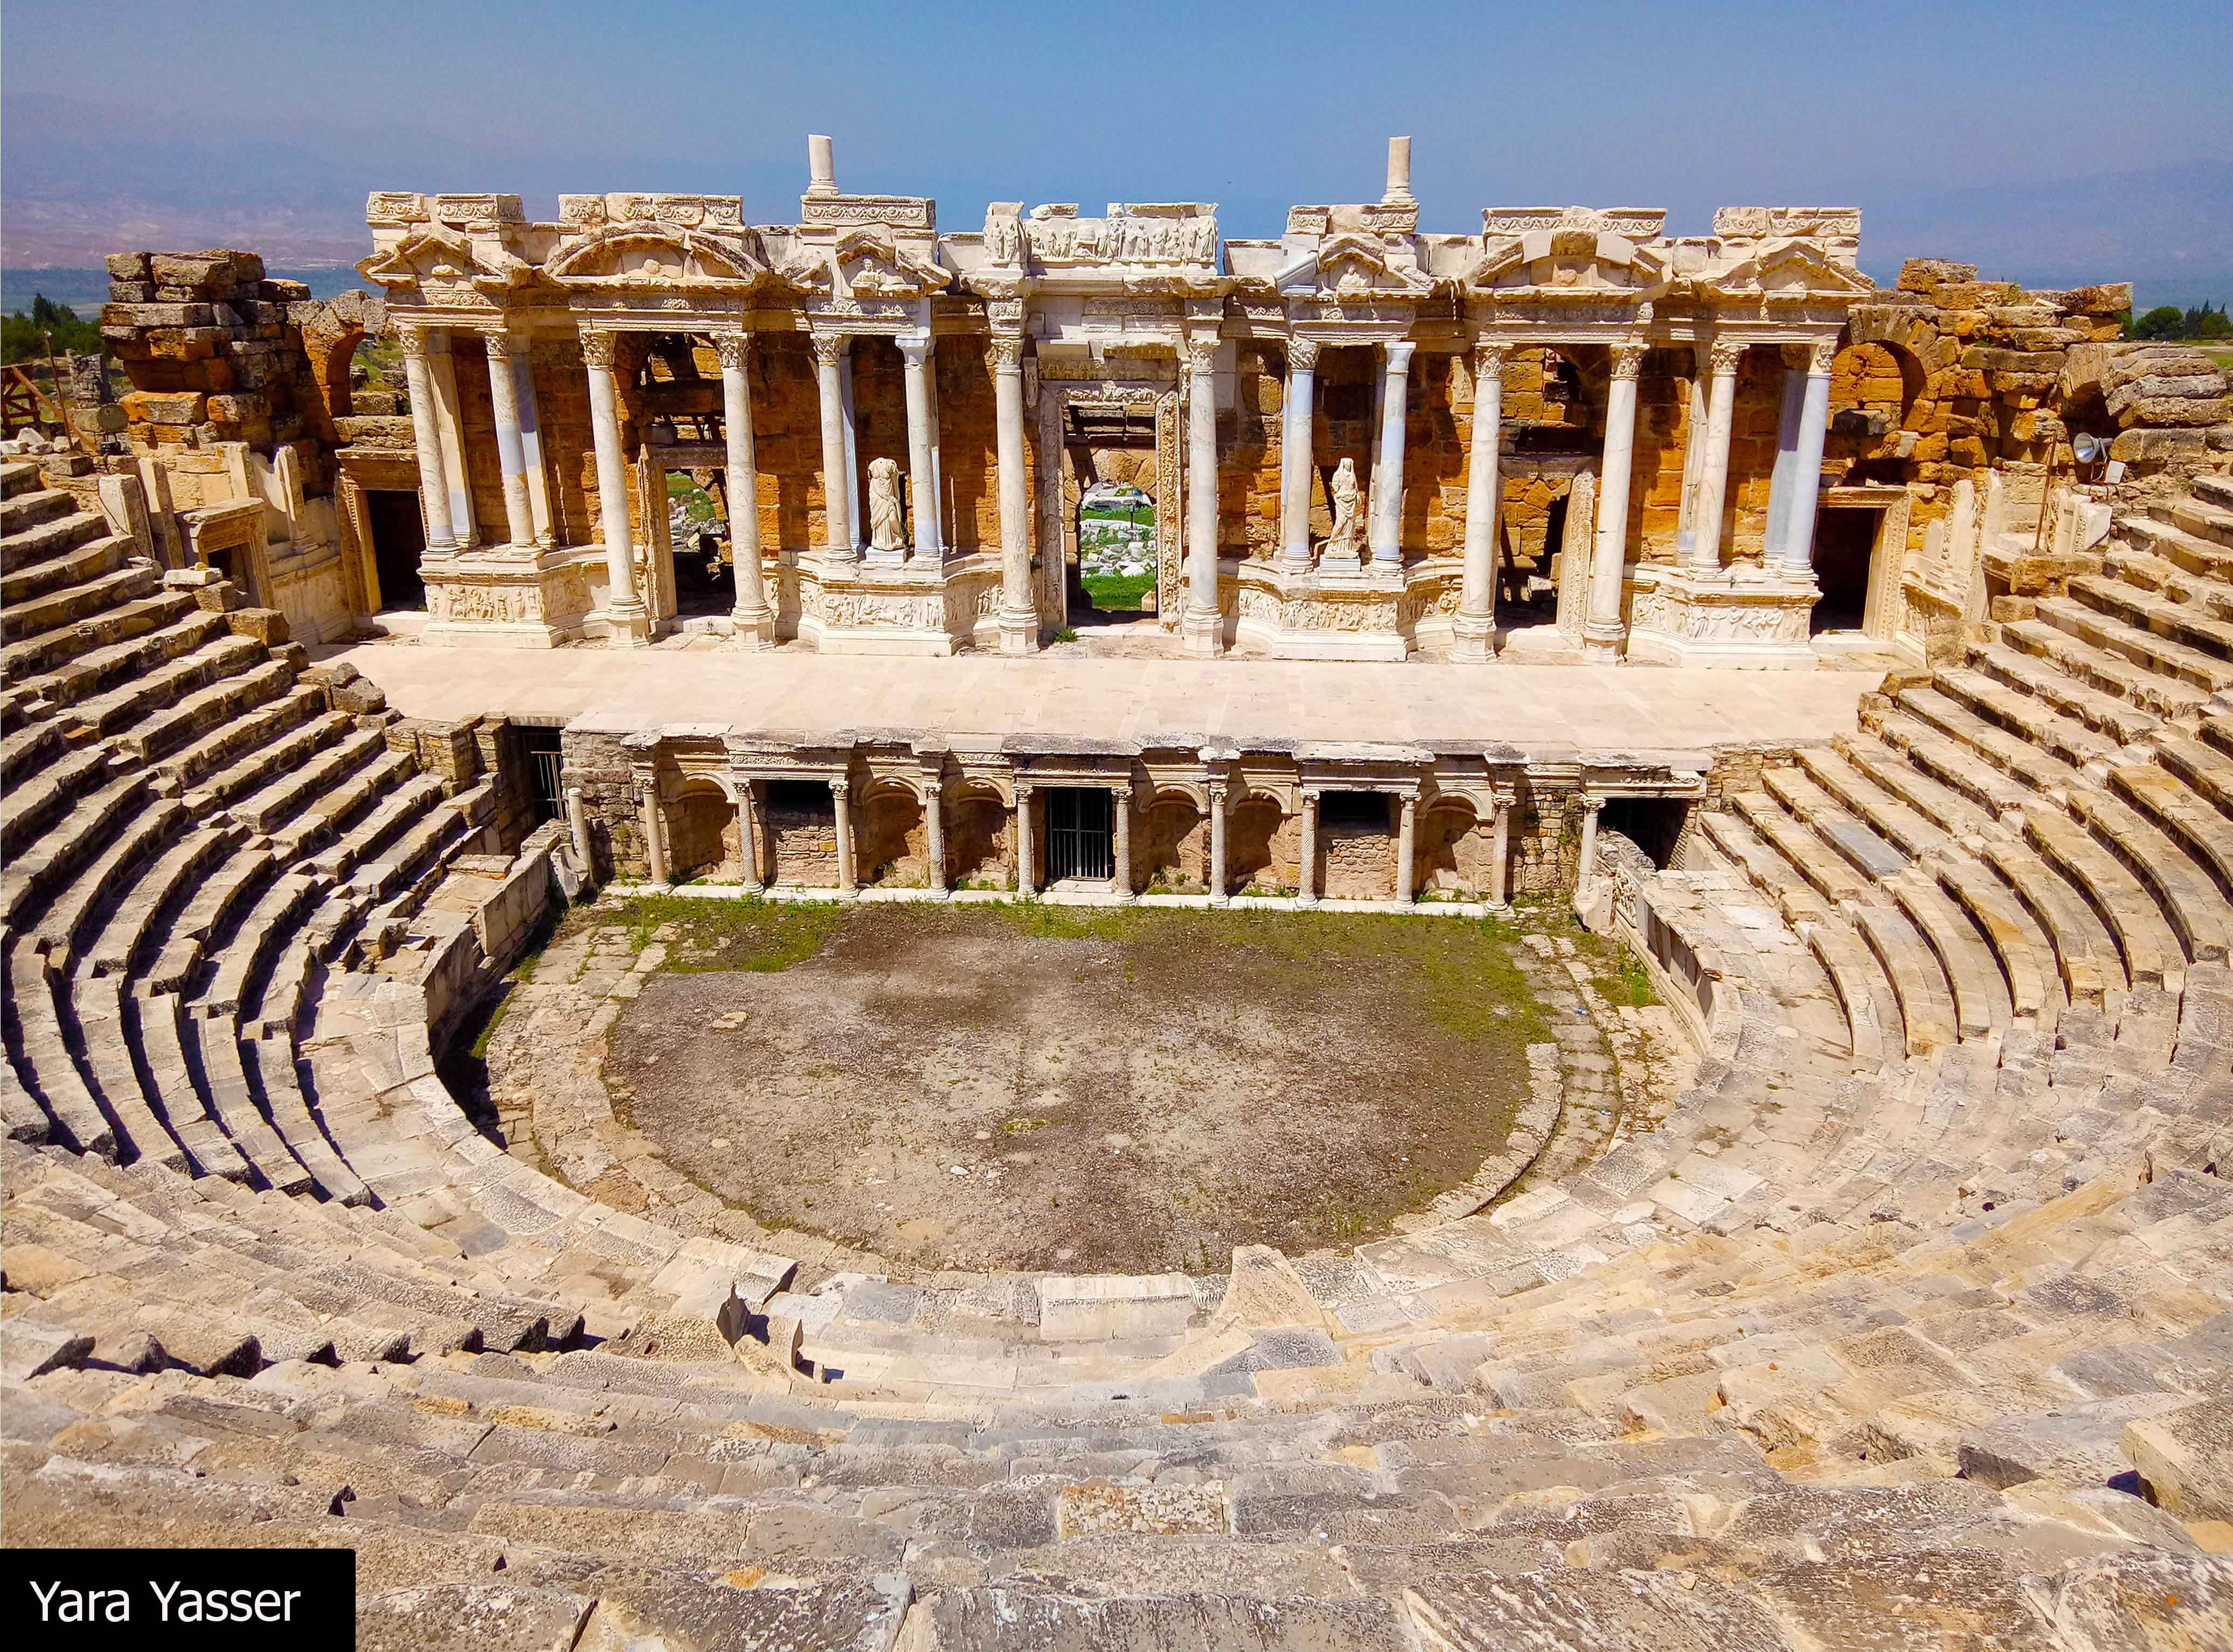 The Roman Theater, there are 50 rows of seats divided into 7 parts by 8 intermediate stairways.